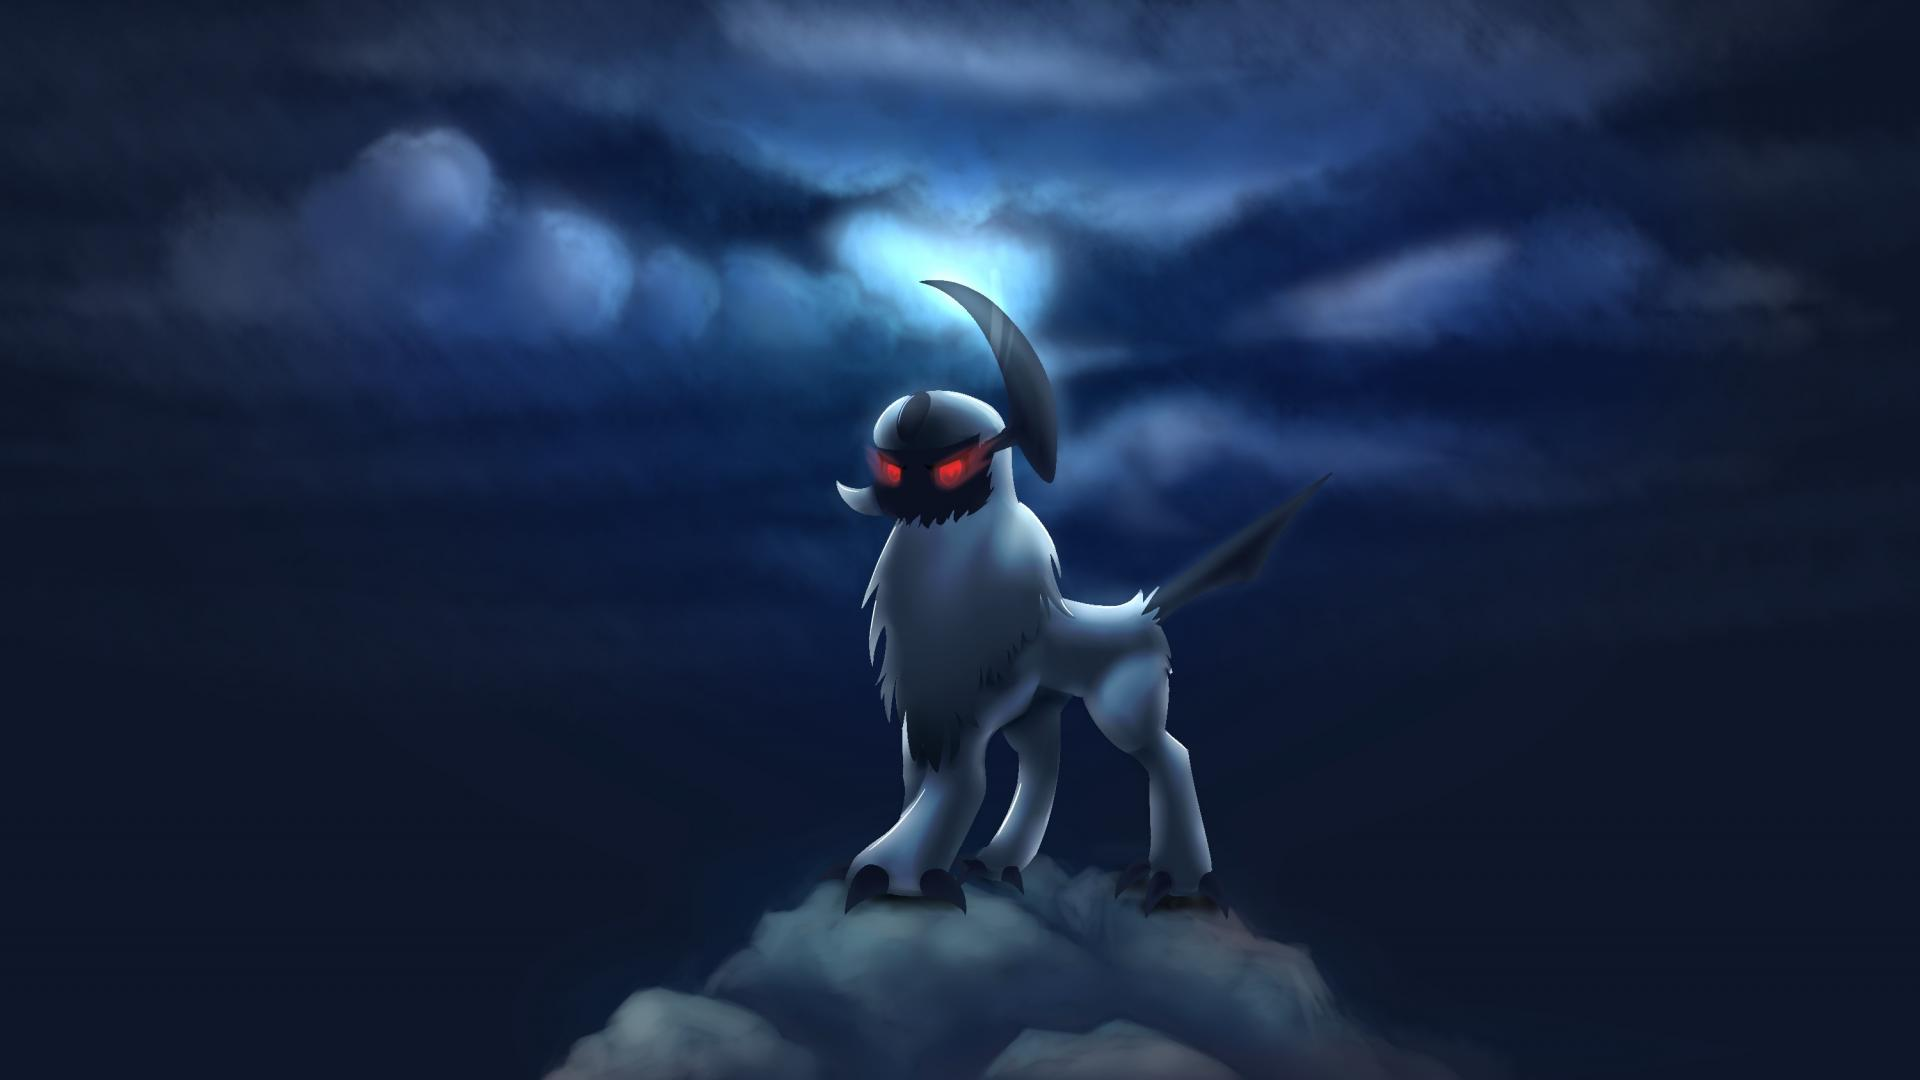 Pokemon Absol Wallpaper - WallpaperSafari